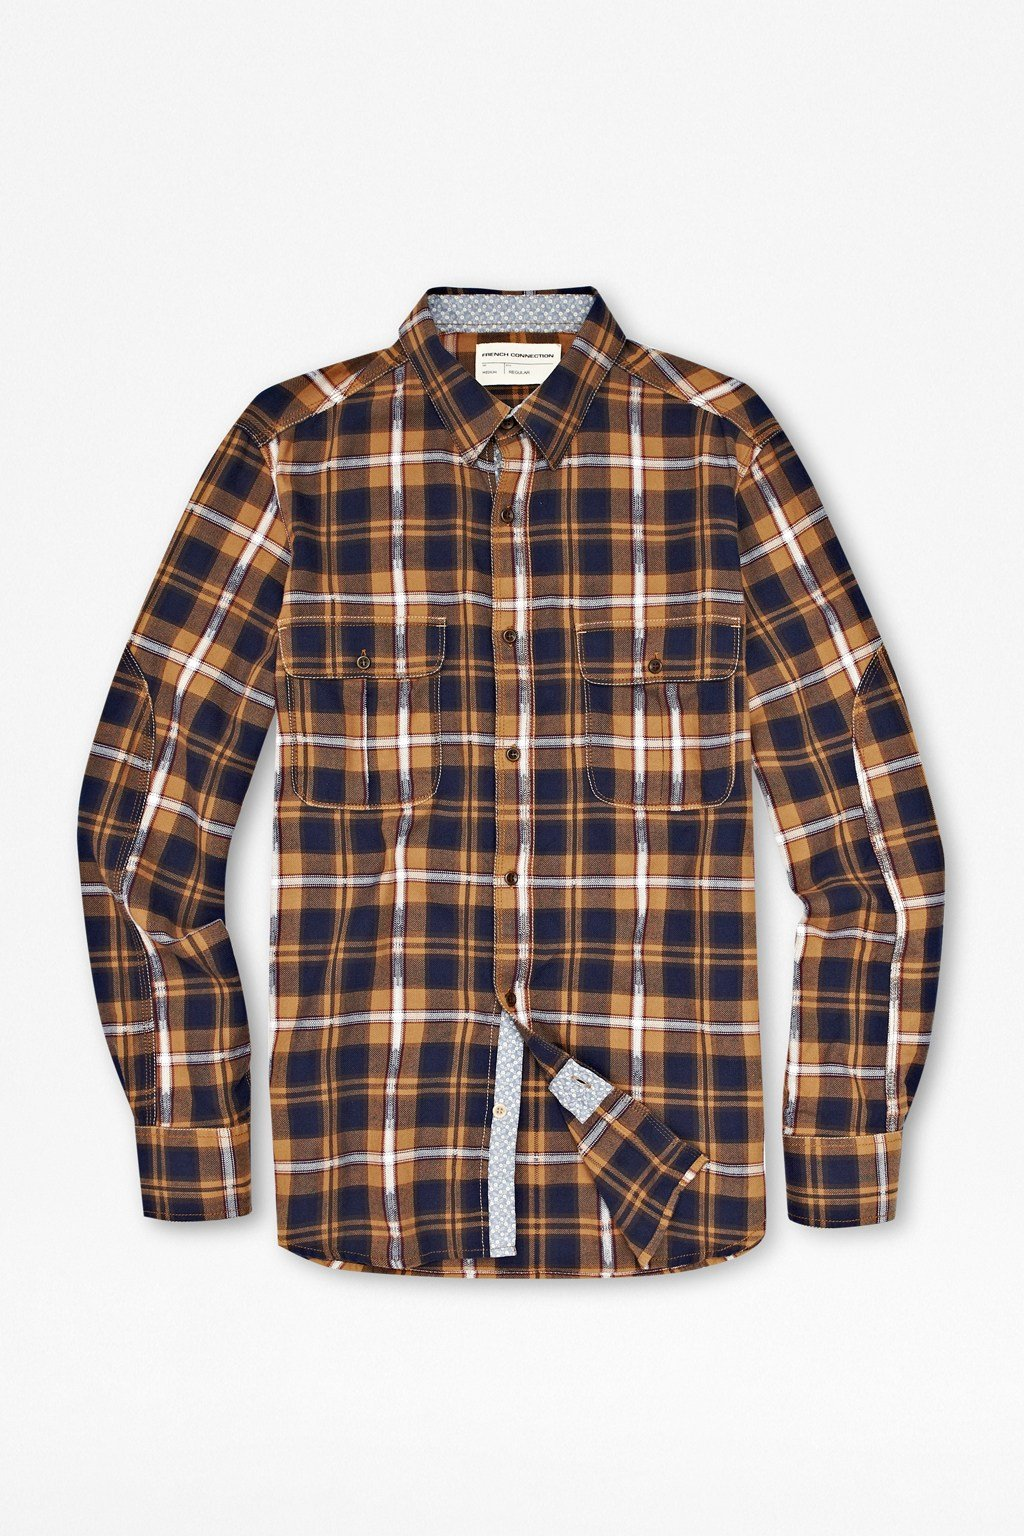 Mad for plaid. Denim & Co. brings this classic plaid button-up shirt in a brushed cotton fabric that is not only warm and soft, but breathable and comfortable too/5.